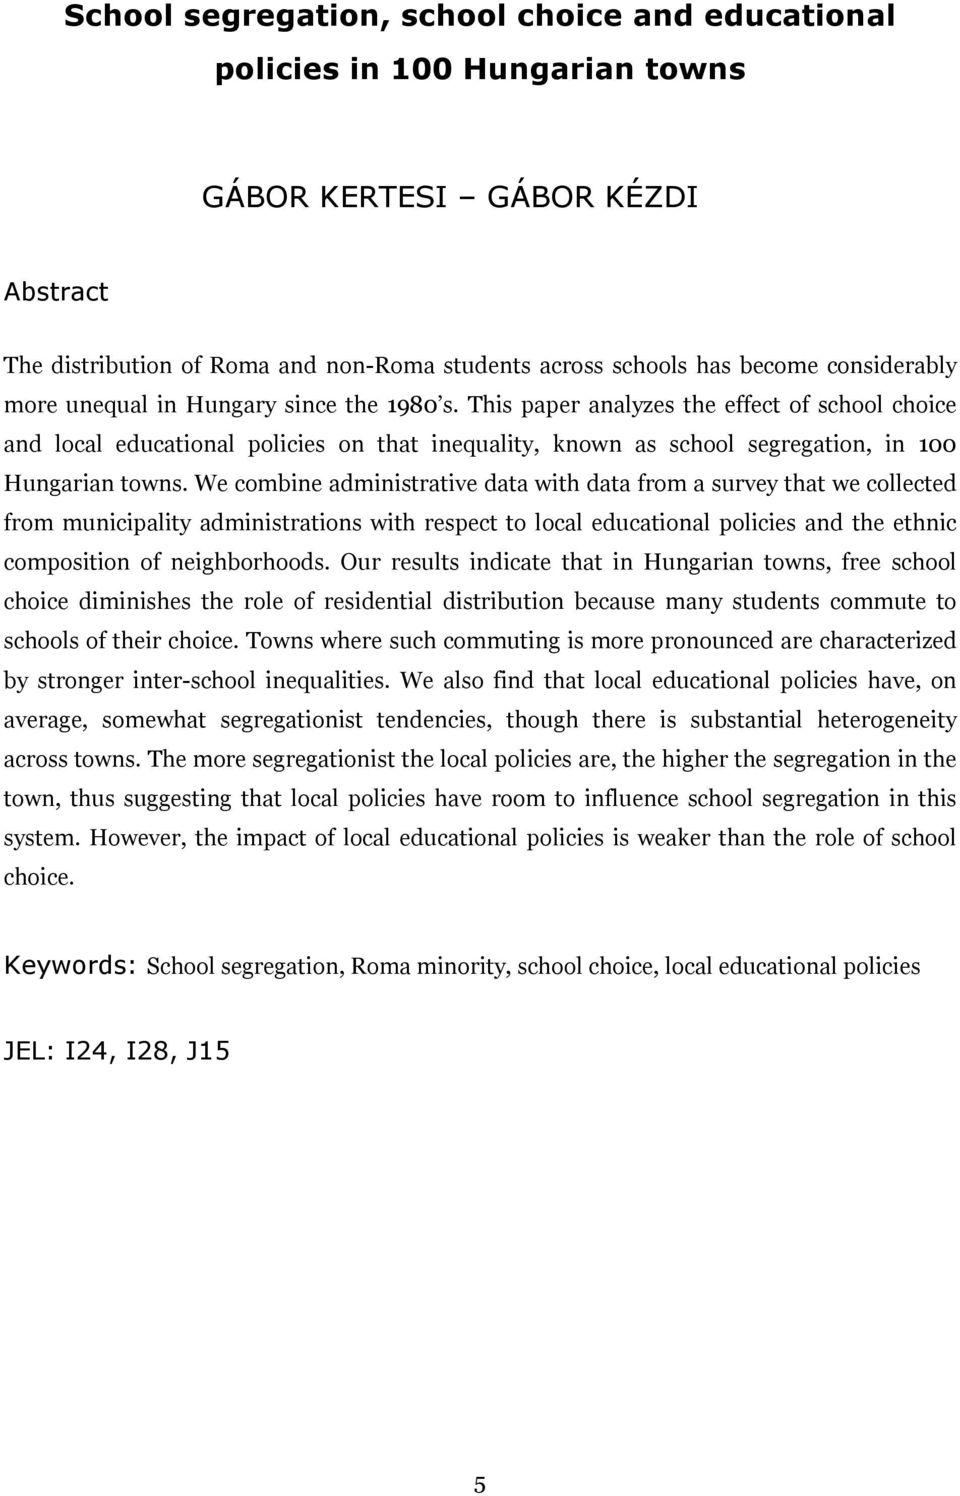 This paper analyzes the effect of school choice and local educational policies on that inequality, known as school segregation, in 100 Hungarian towns.